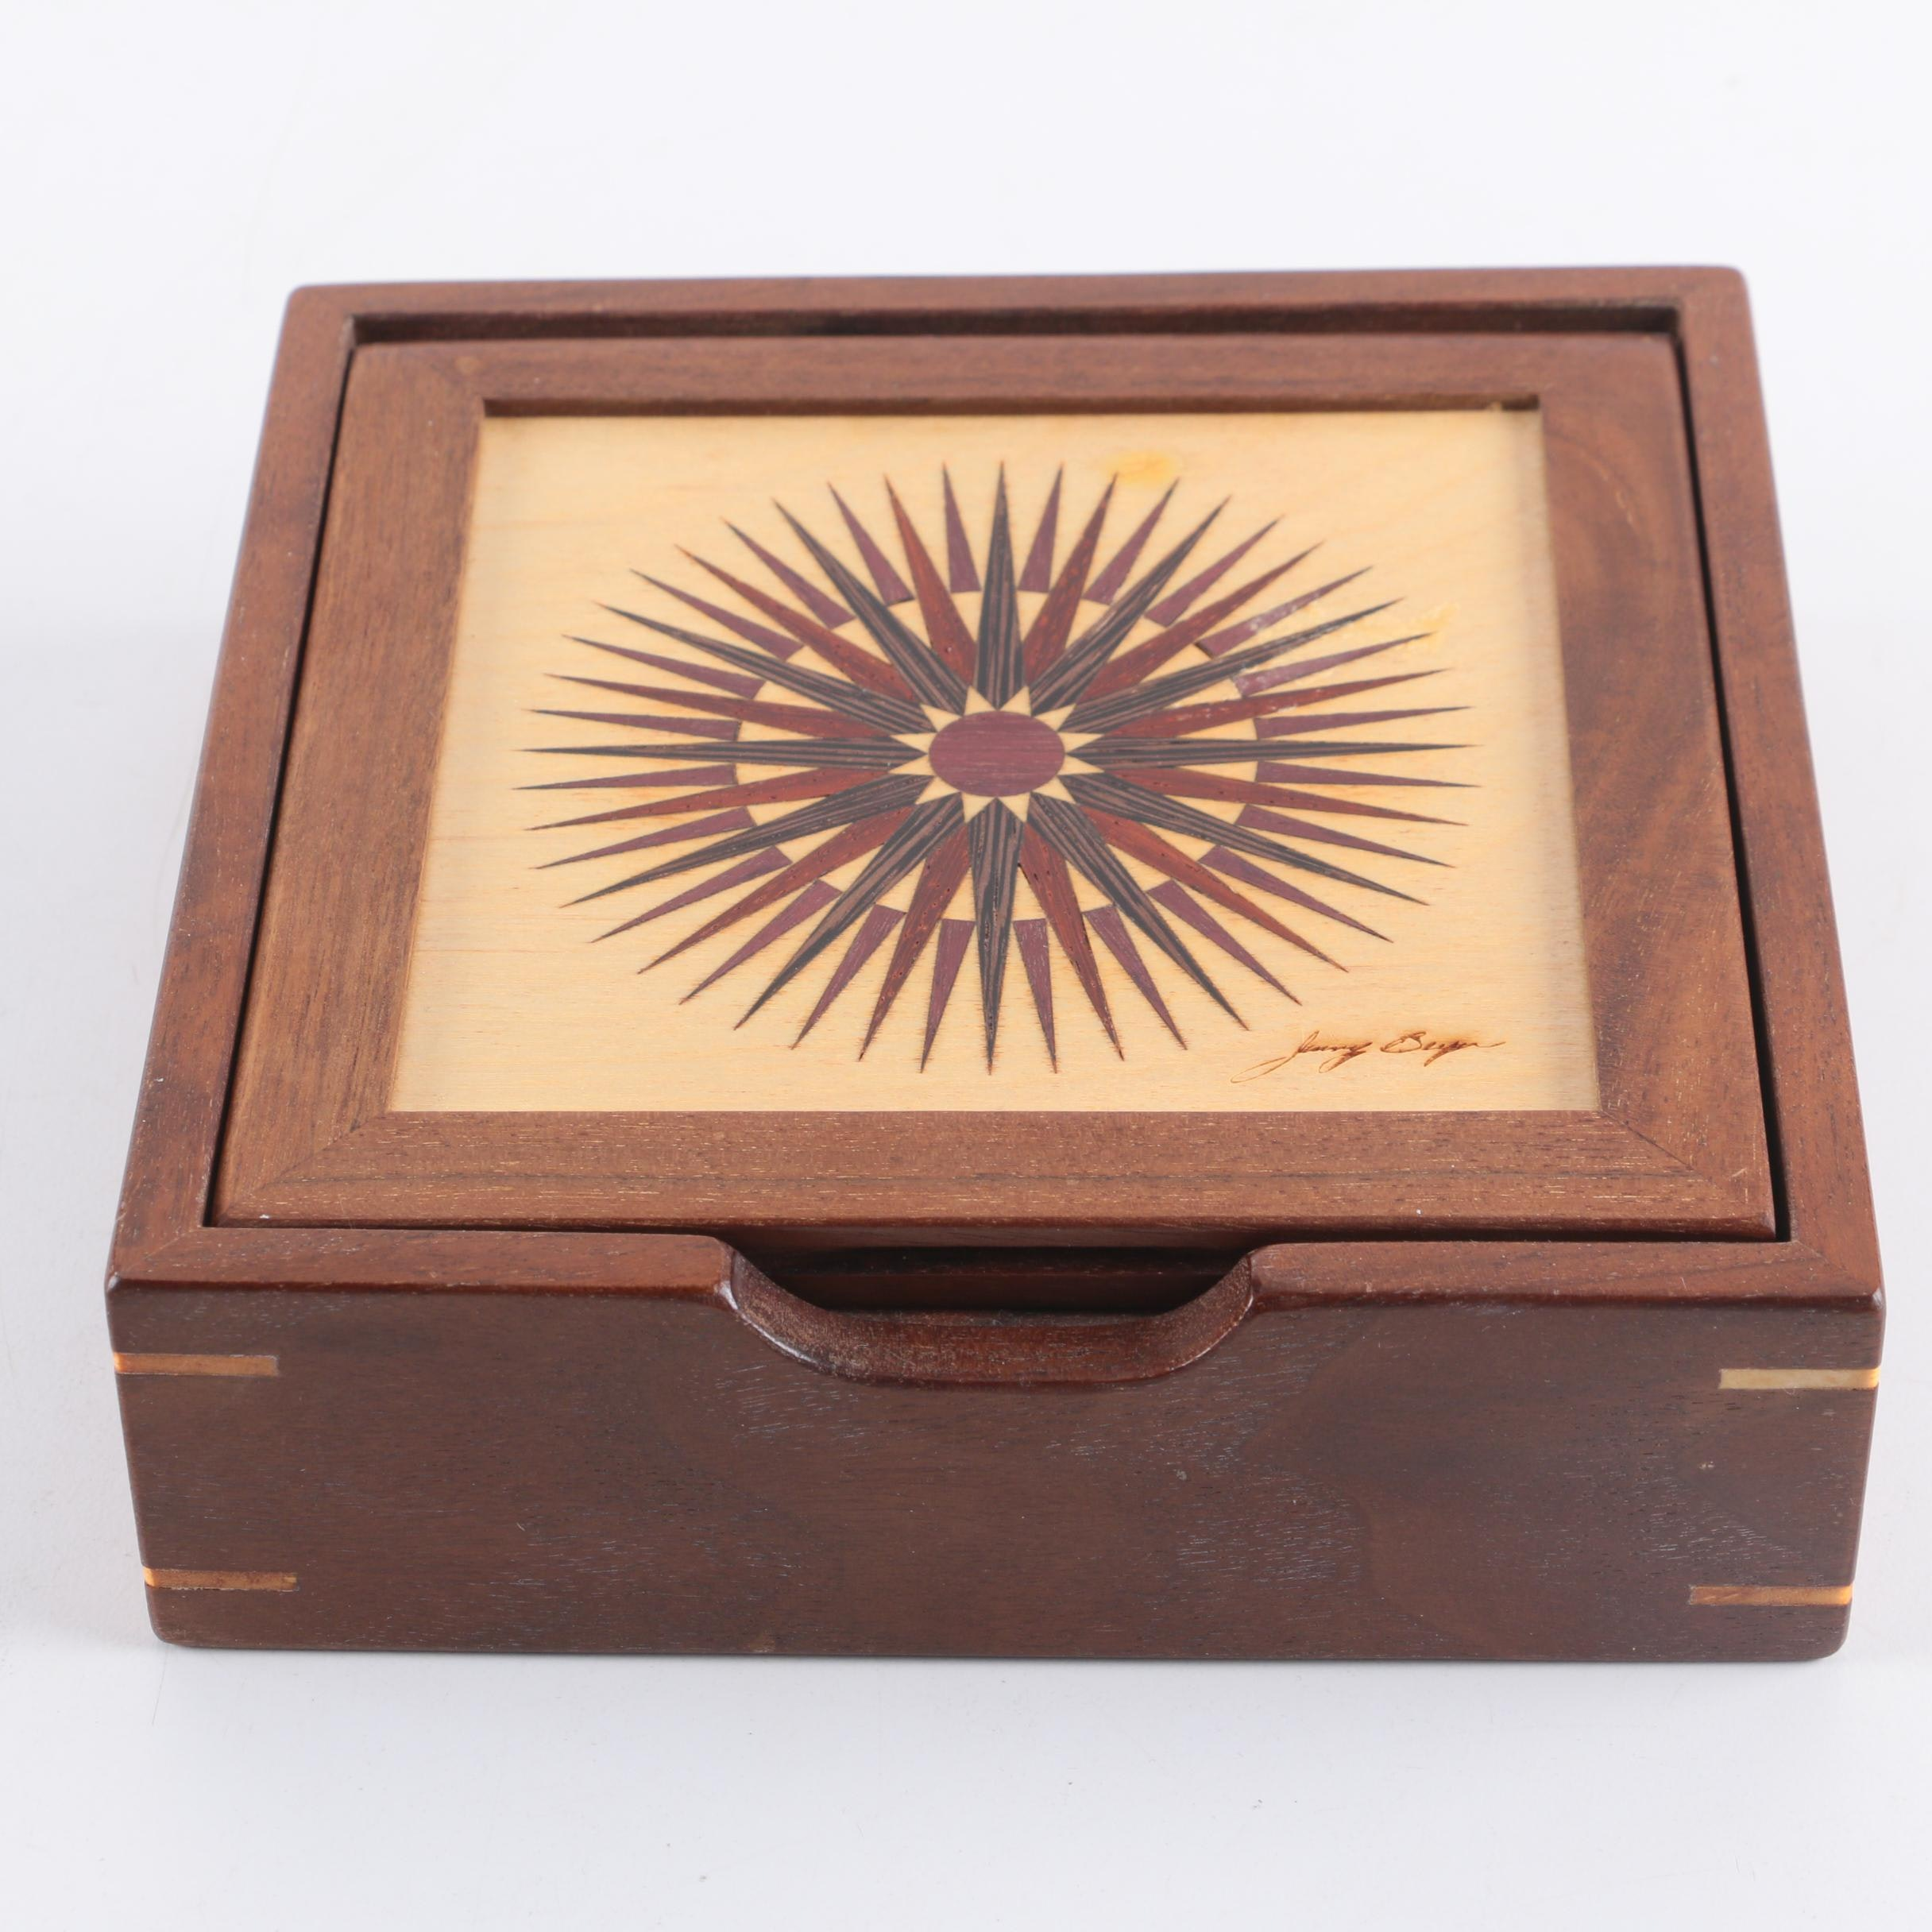 "Jinny Beyer ""Ray of Light"" Decorative Wooden Box by Gary White"